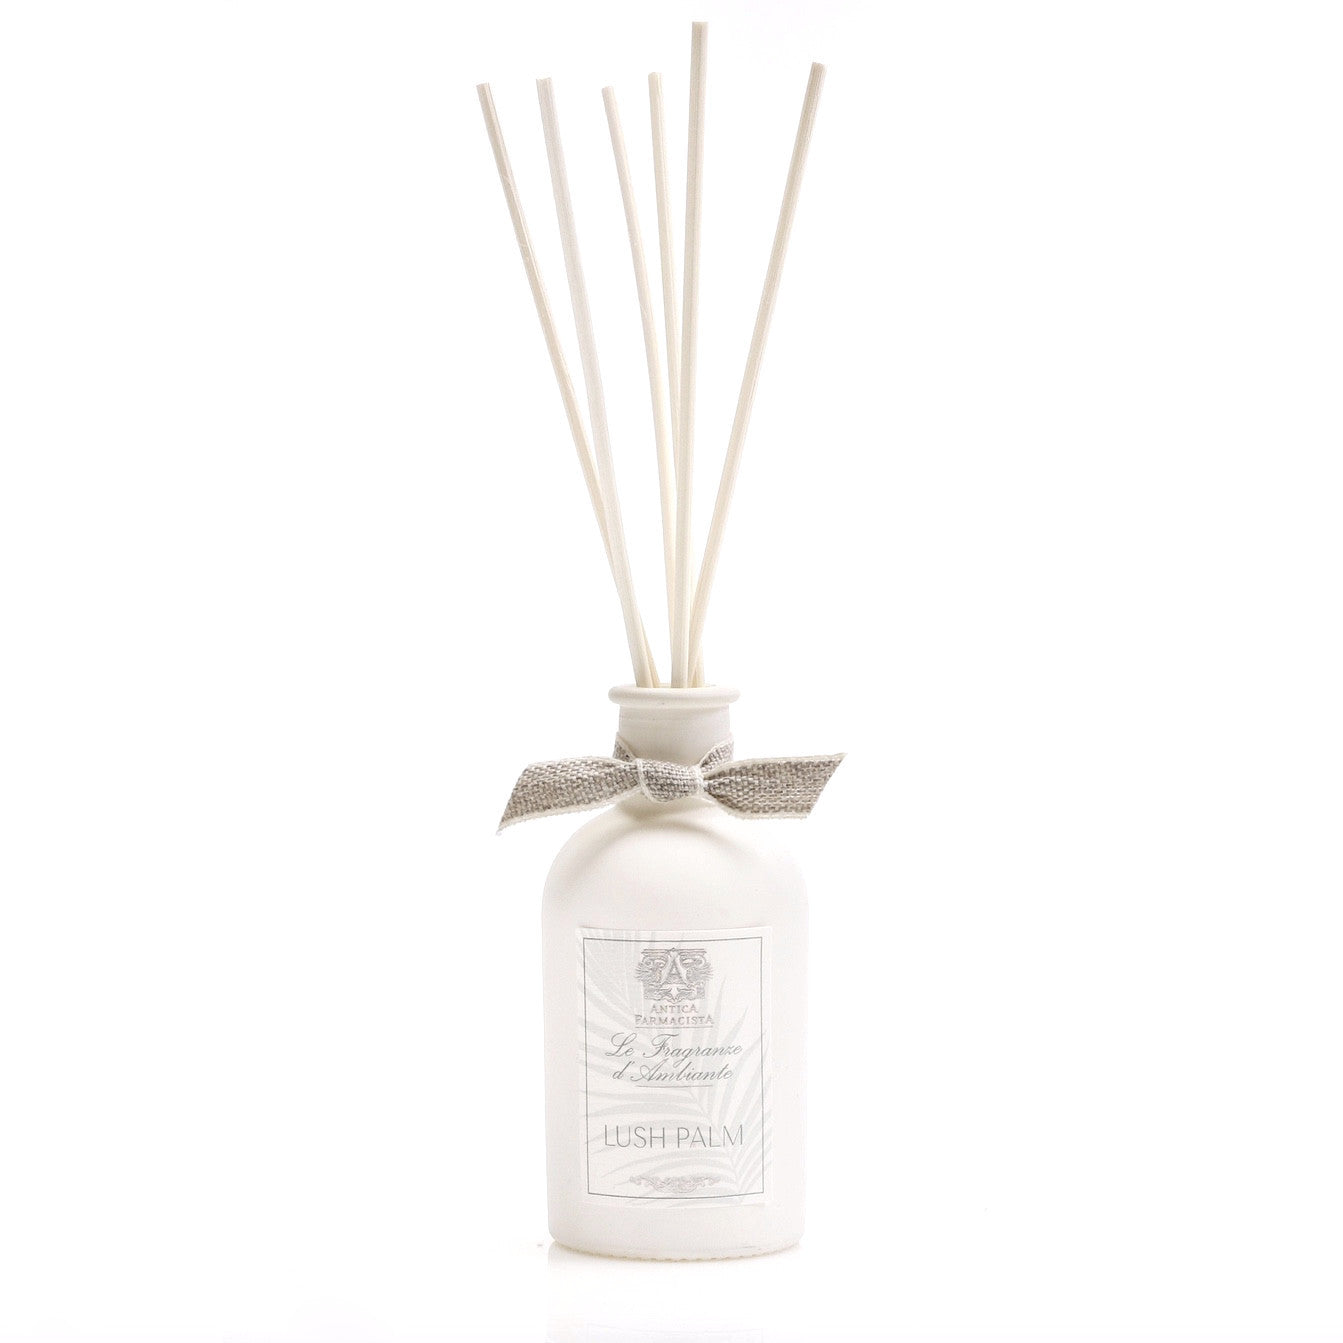 Antica Farmacista Lush Palm Diffuser 100ml